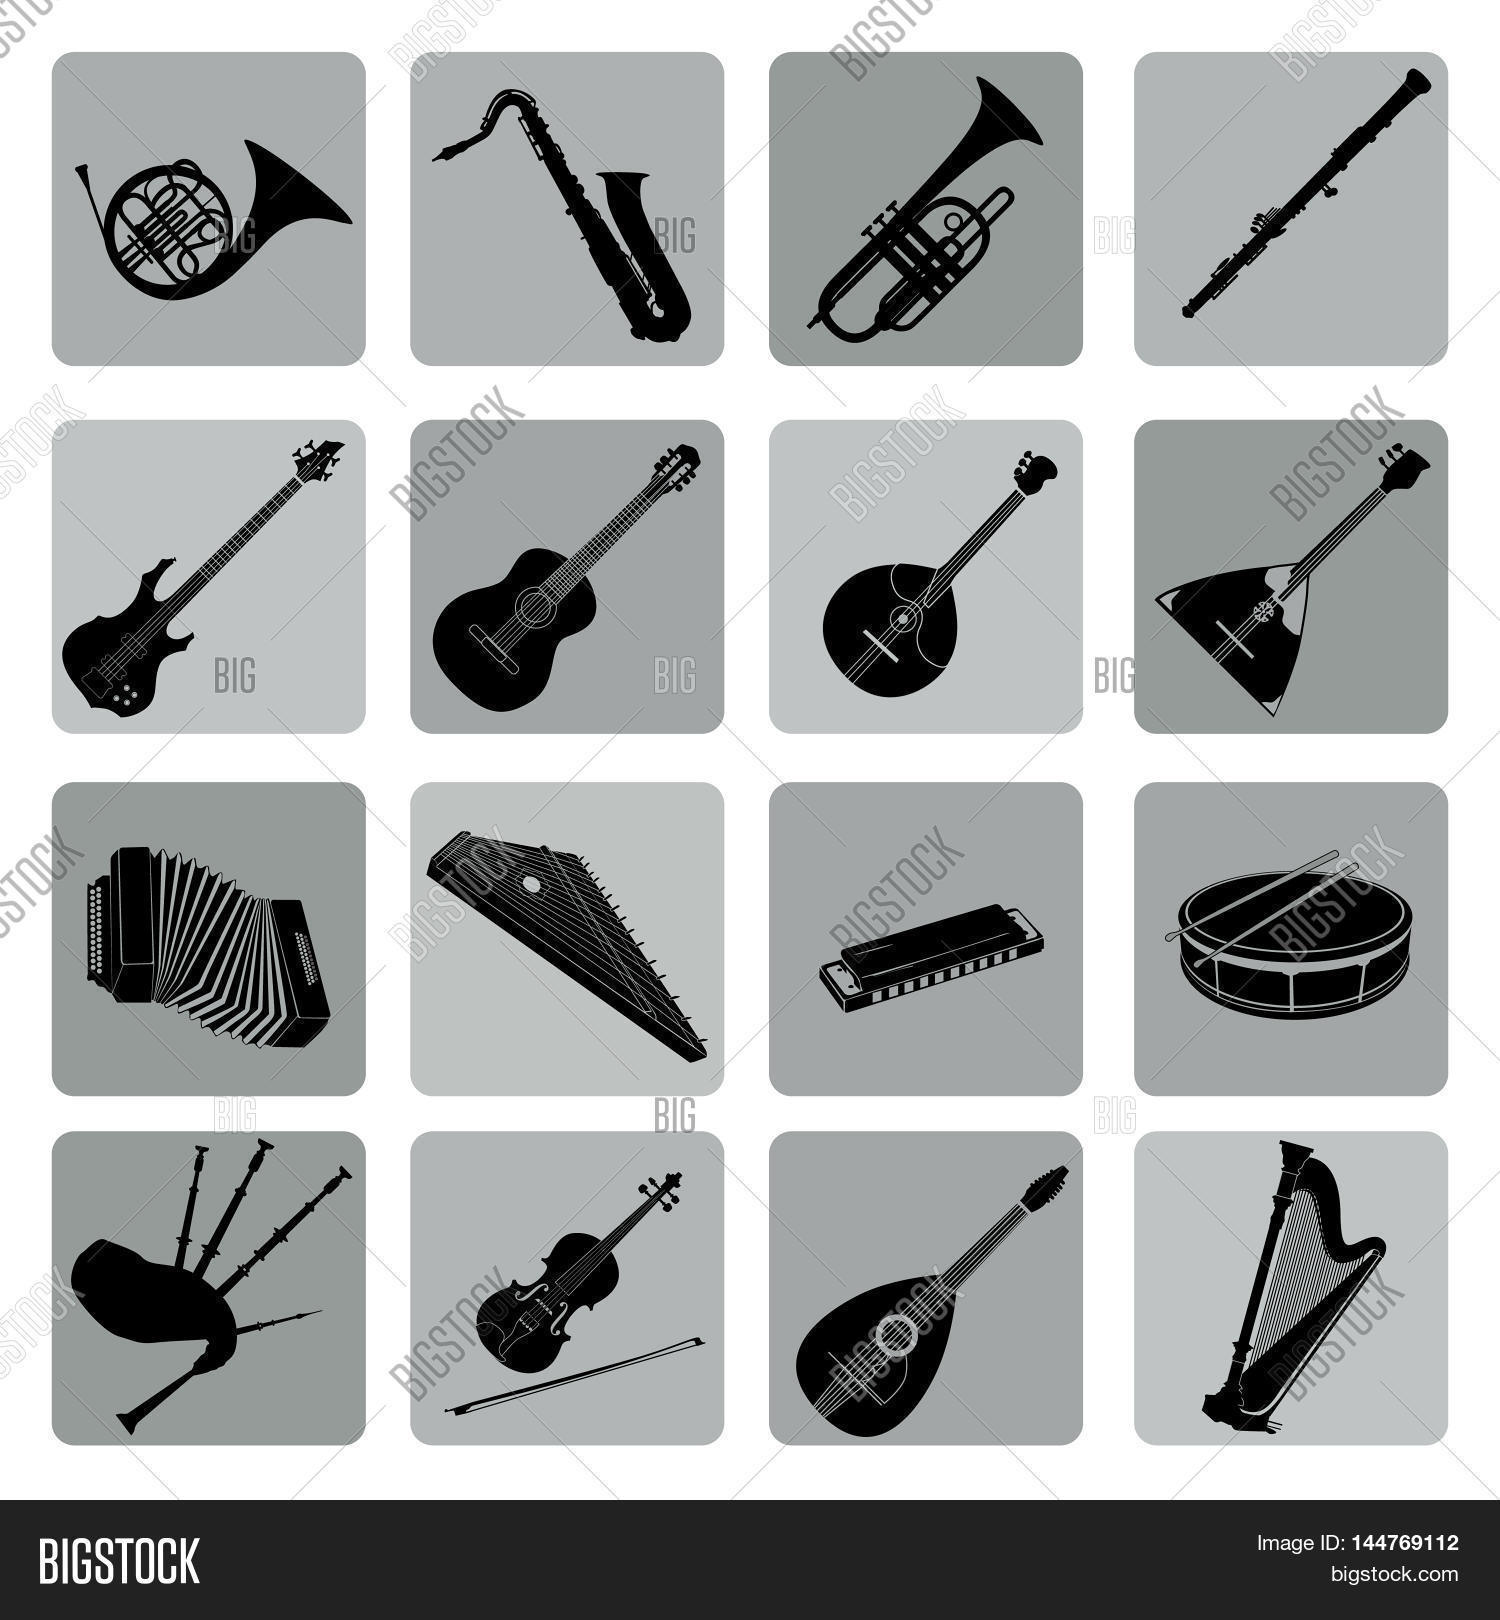 Musical Instruments Image Photo Free Trial Bigstock